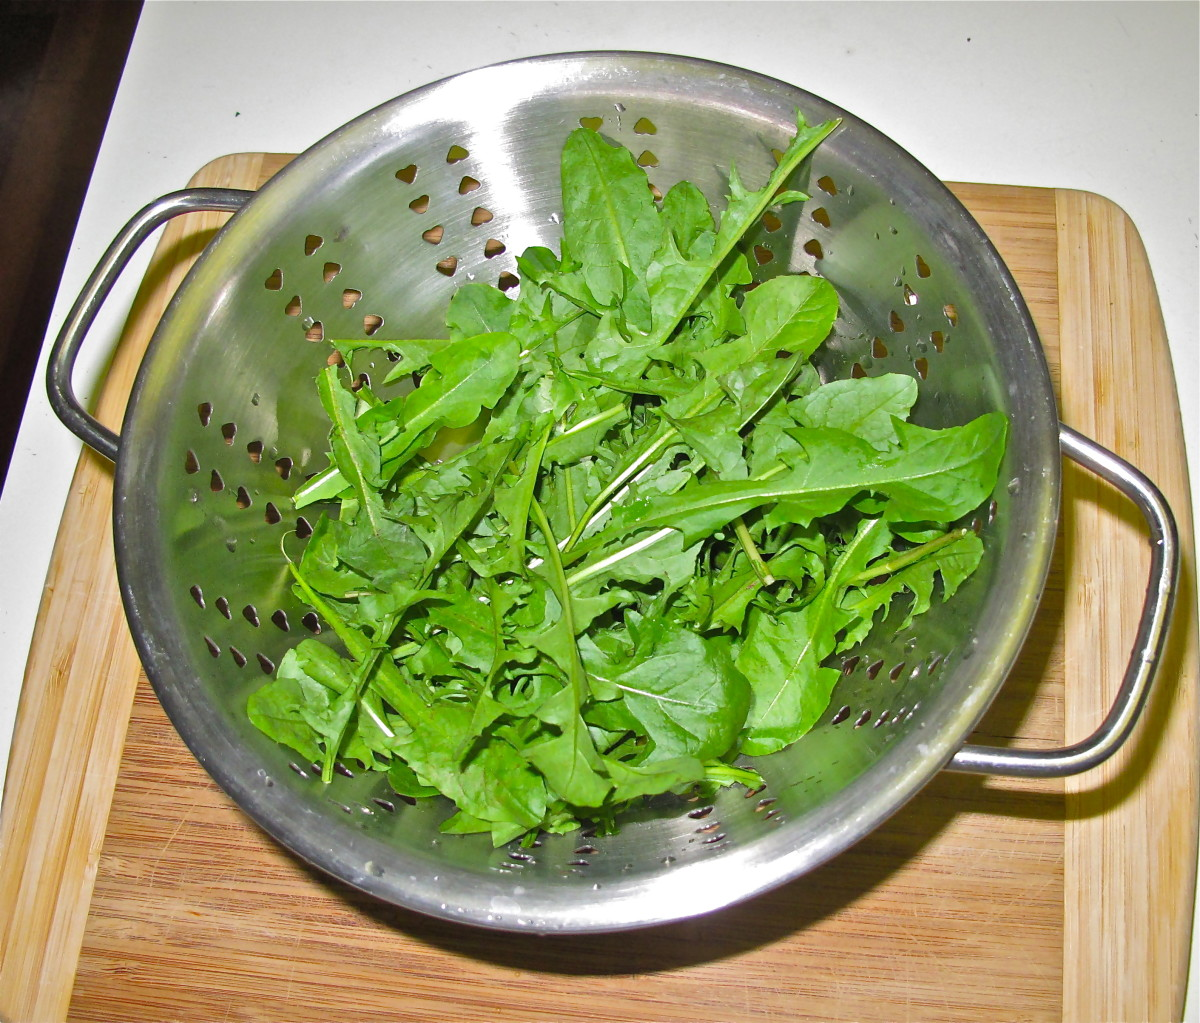 Rinse and clean fresh, tender leaves from dandelion plants.